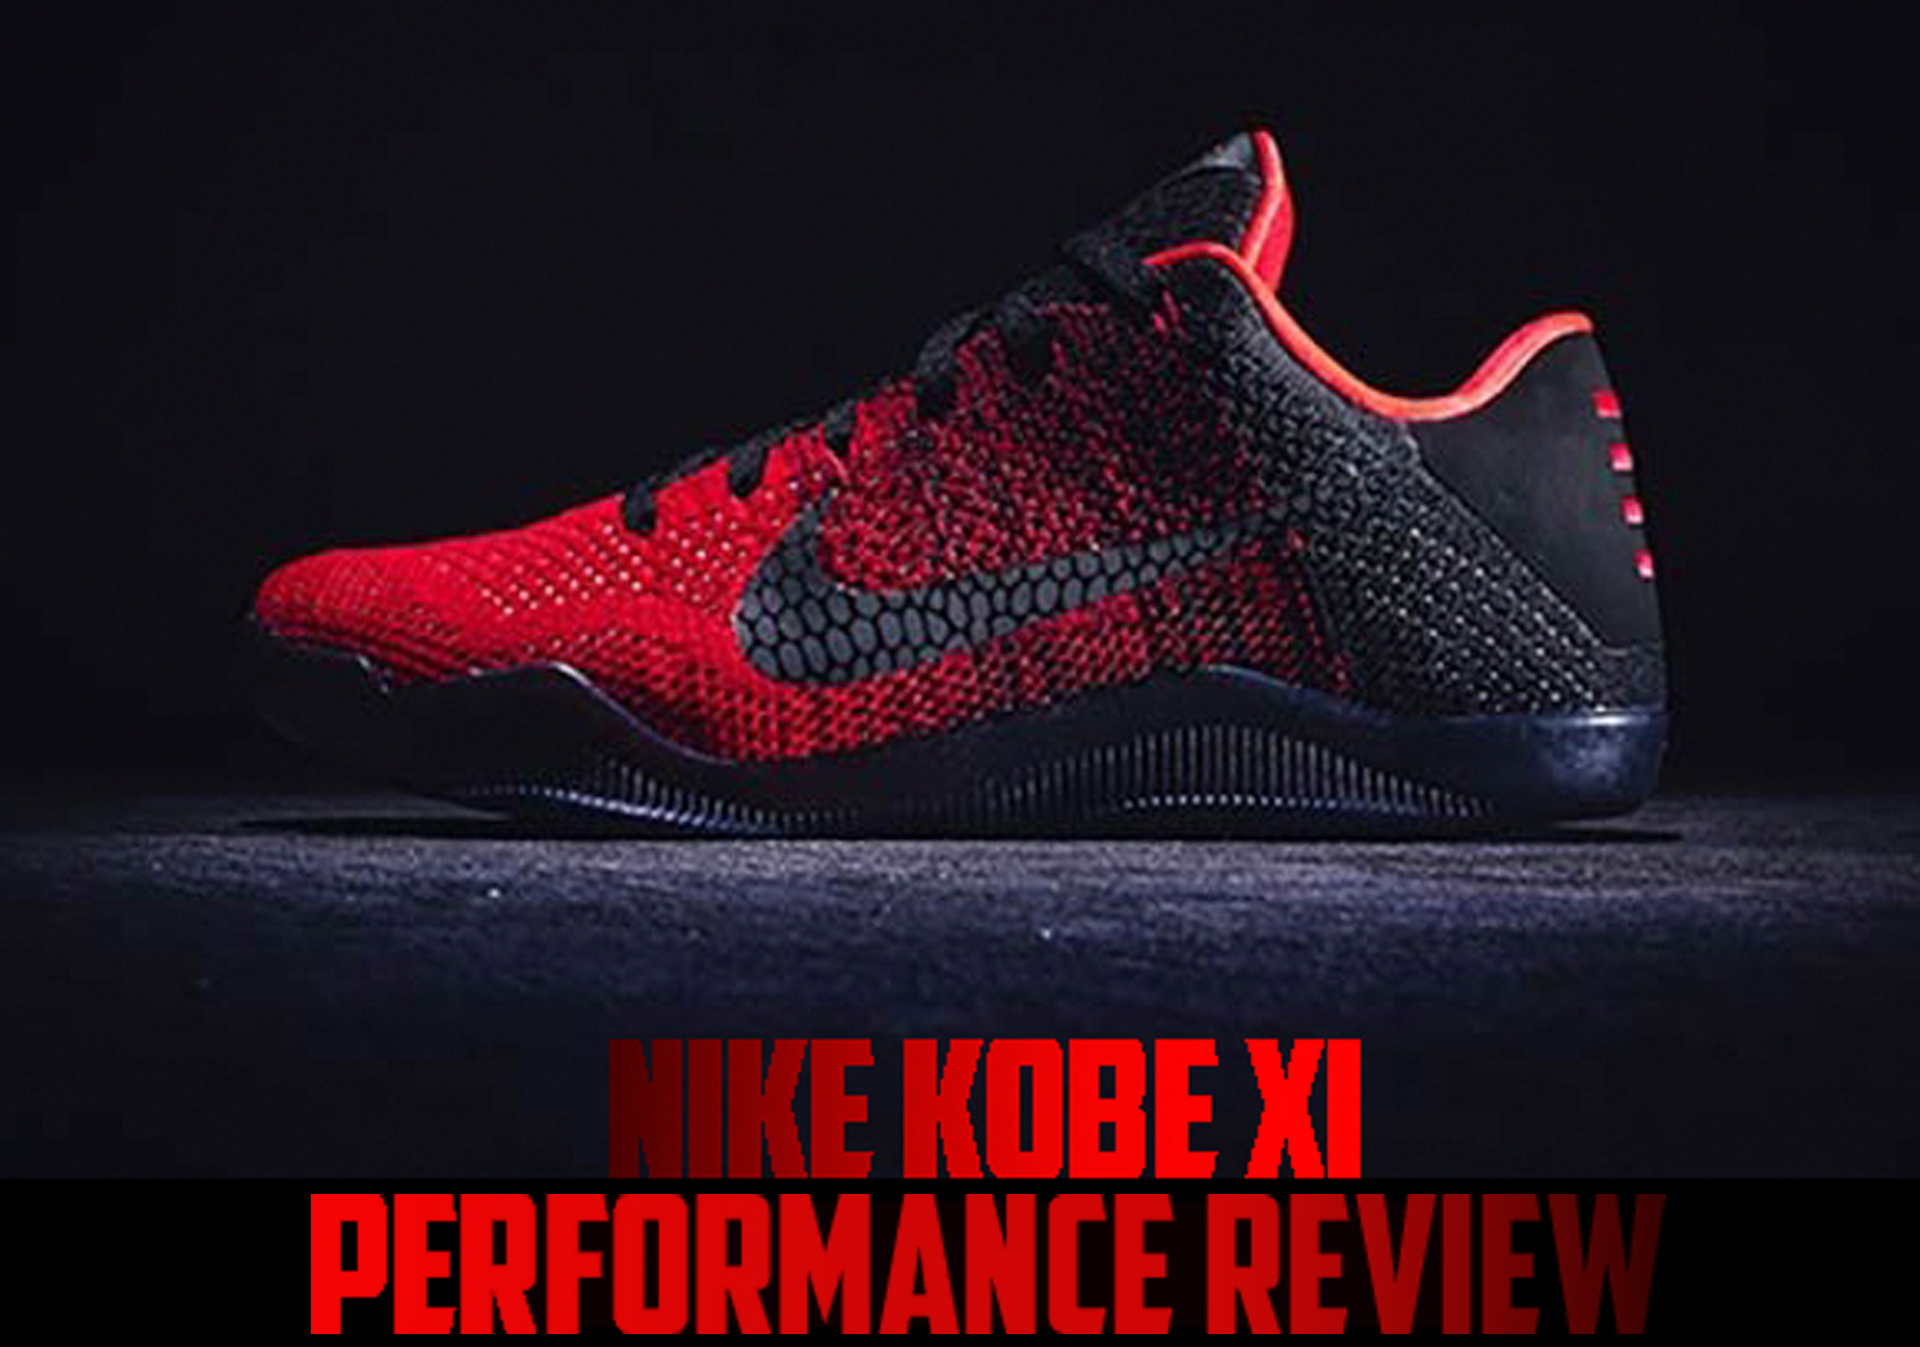 Nike Kobe XI Performance Review Main